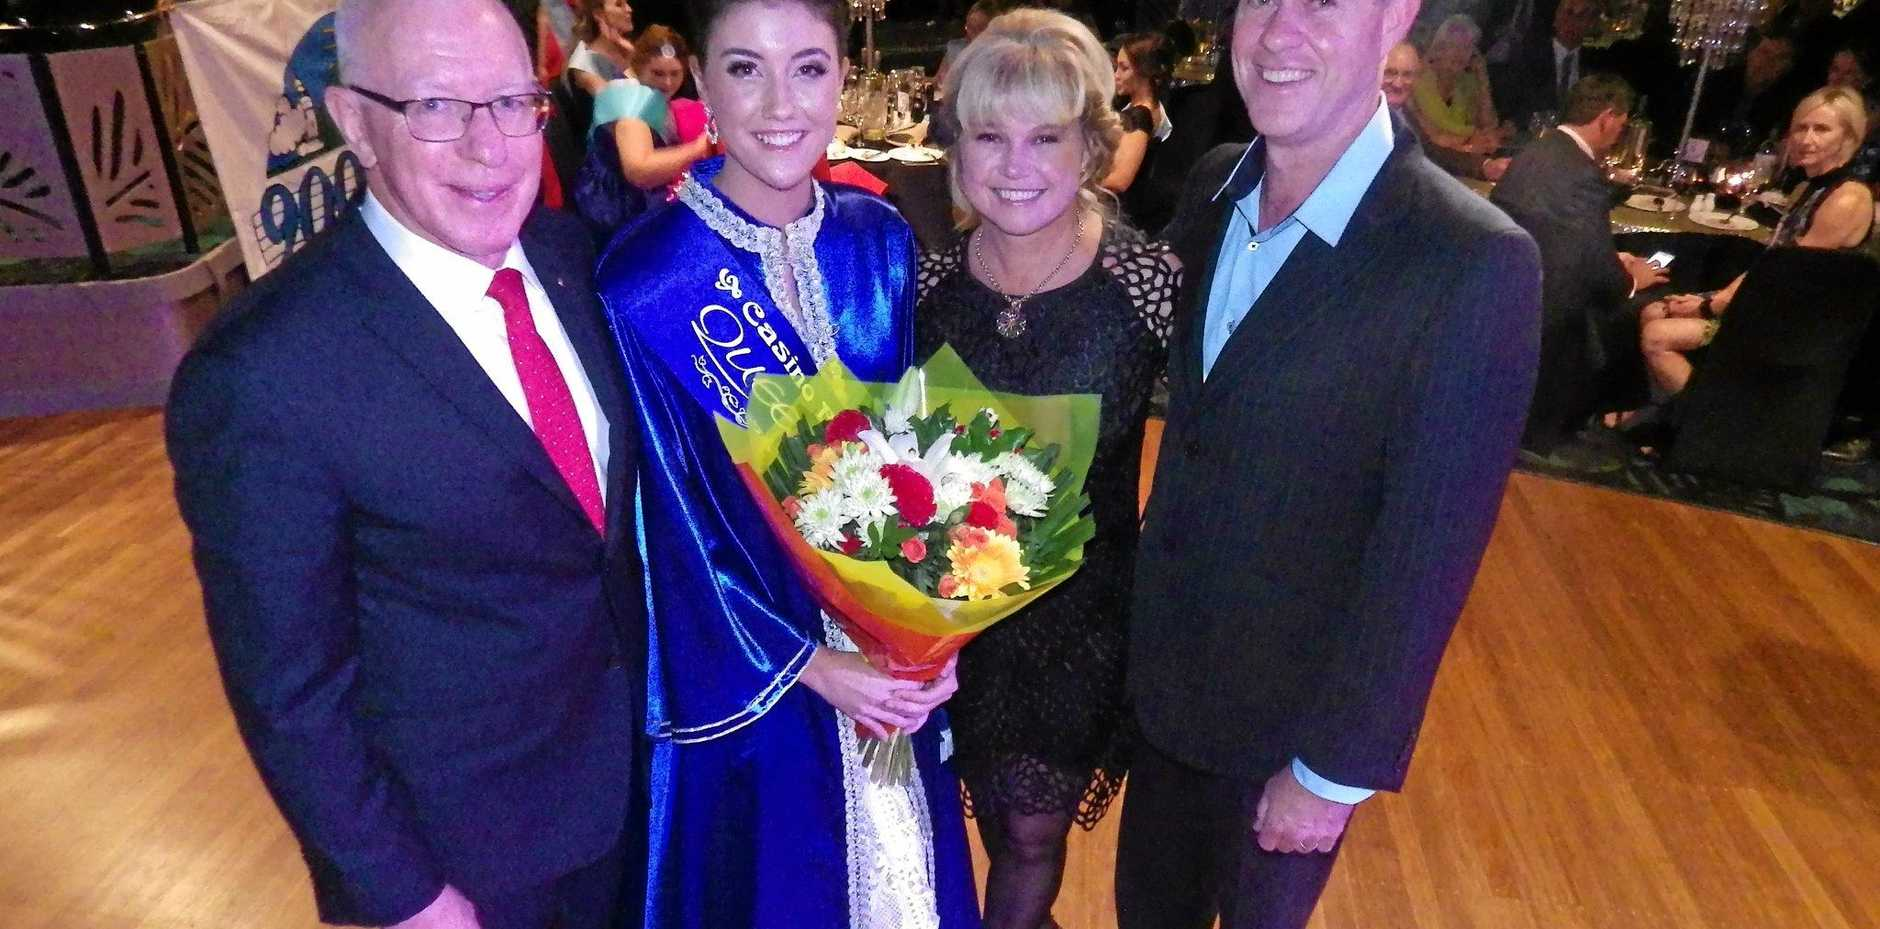 2016 Beef Week Queen Georgia King is crowned at the Casino RSM Club, pictured here with Governor David Hurley and her parents, Wendy and David King.